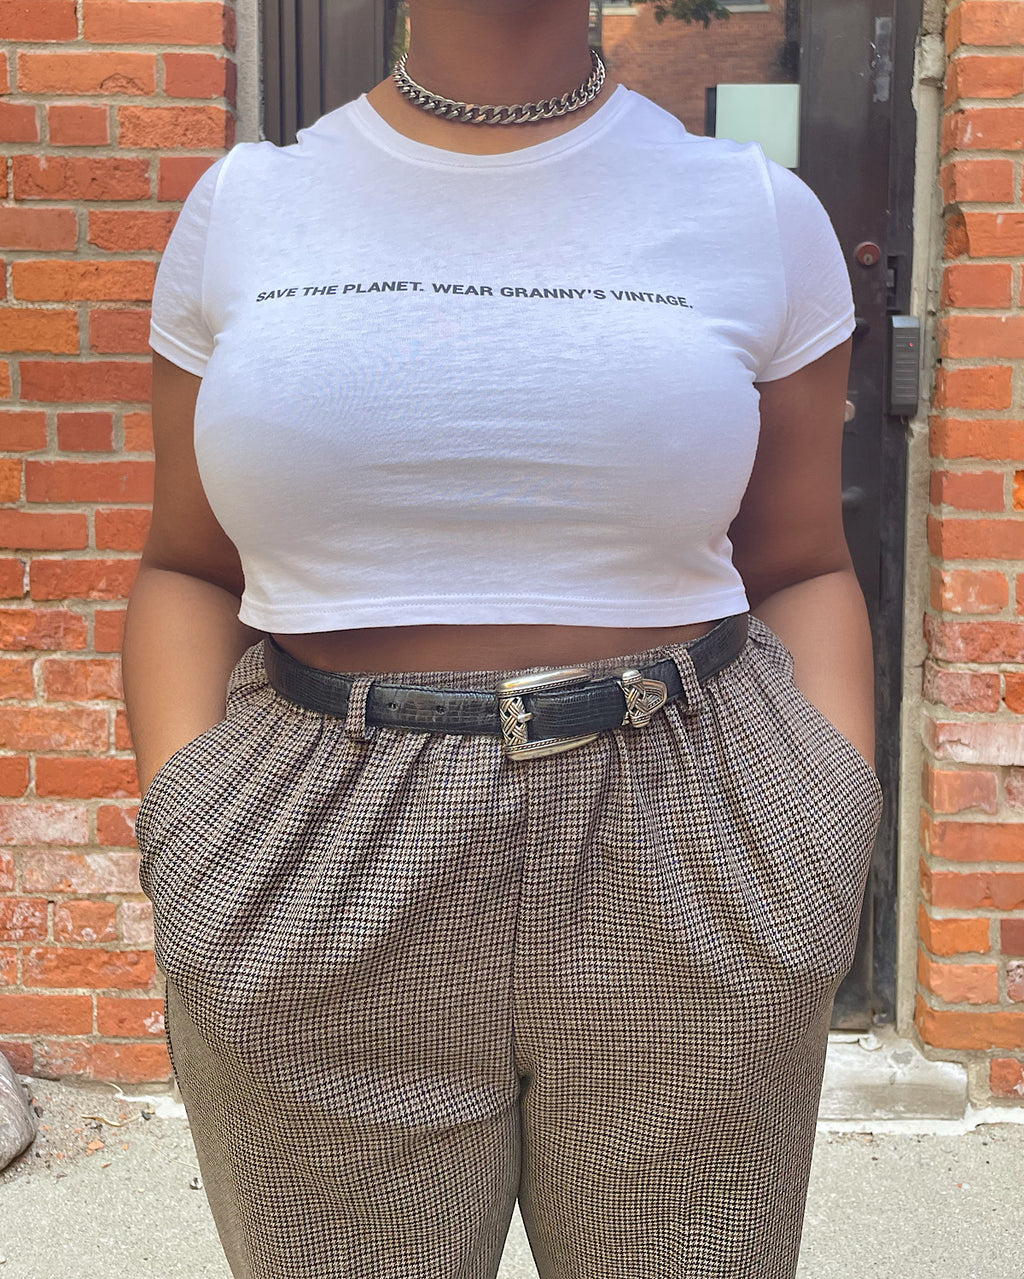 SAVE THE PLANET WEAR GRANNY'S VINTAGE CROP TOP (WHITE)